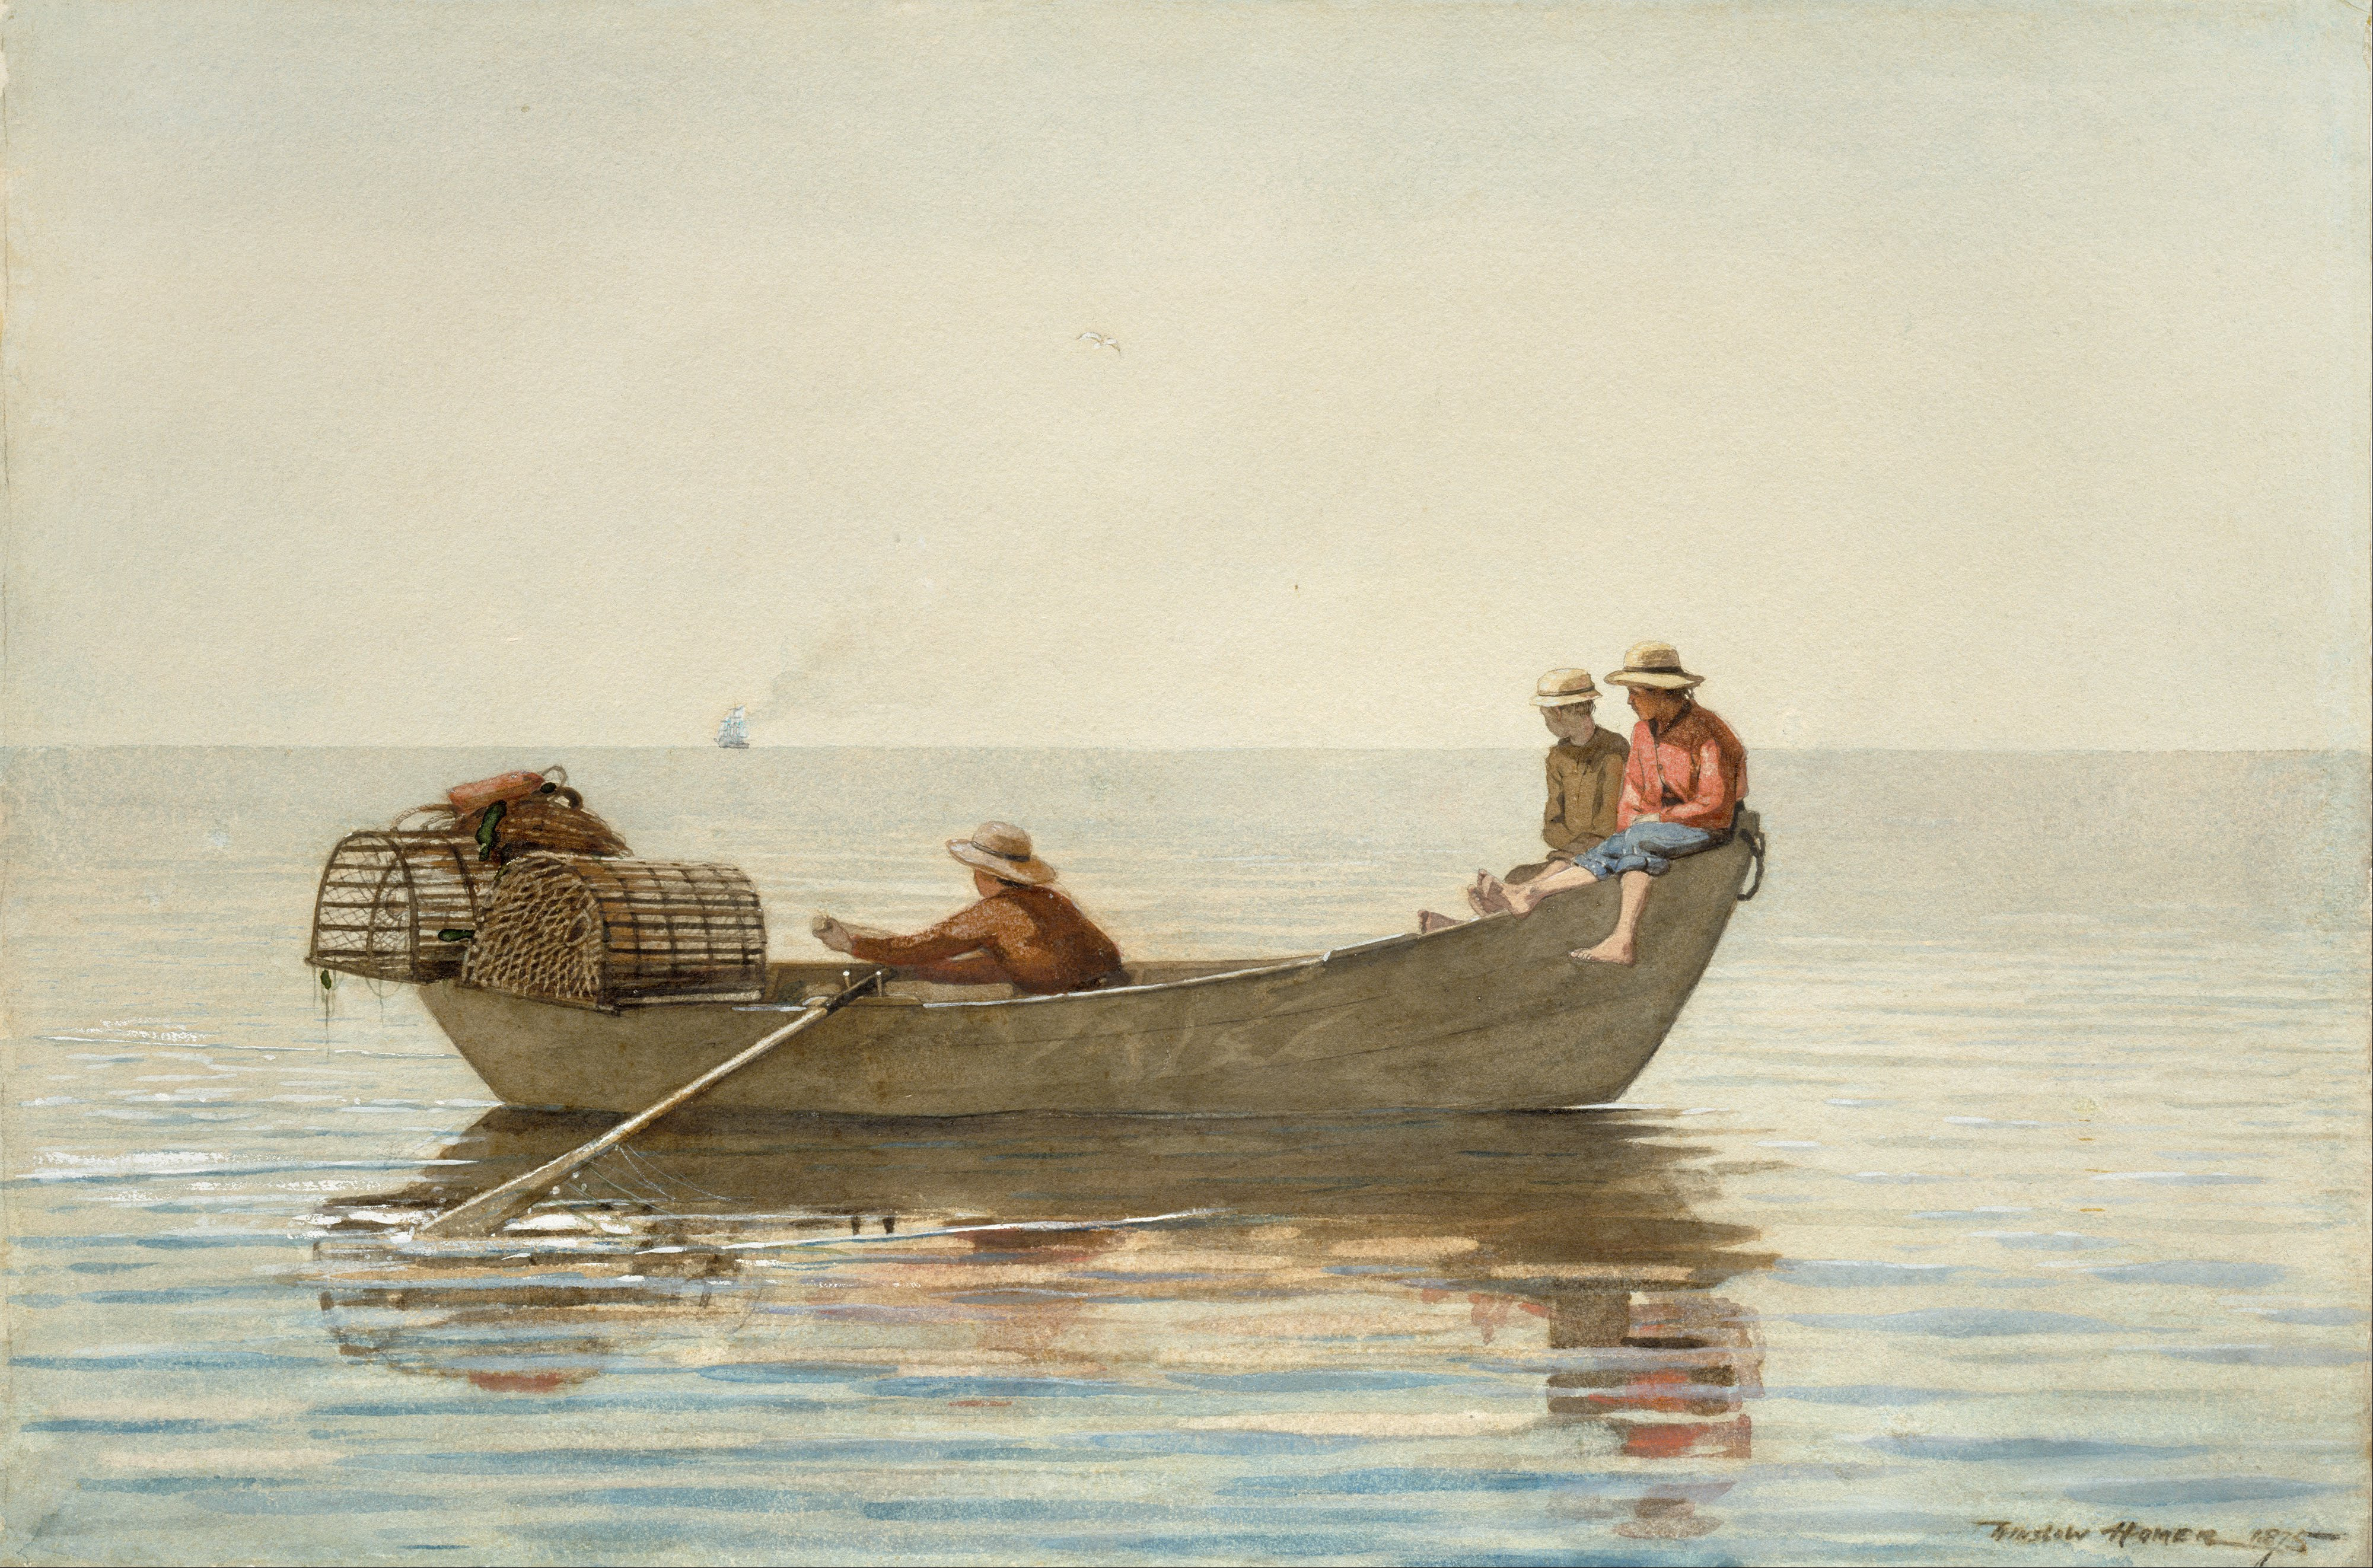 an analysis of winslow homers painting boys in a pasture Inscription lower right: winslow homer na/1874 provenance by 1875, sold by the artist to mr tinker, dublin, ireland by descent to his granddaughter, miss tinker.